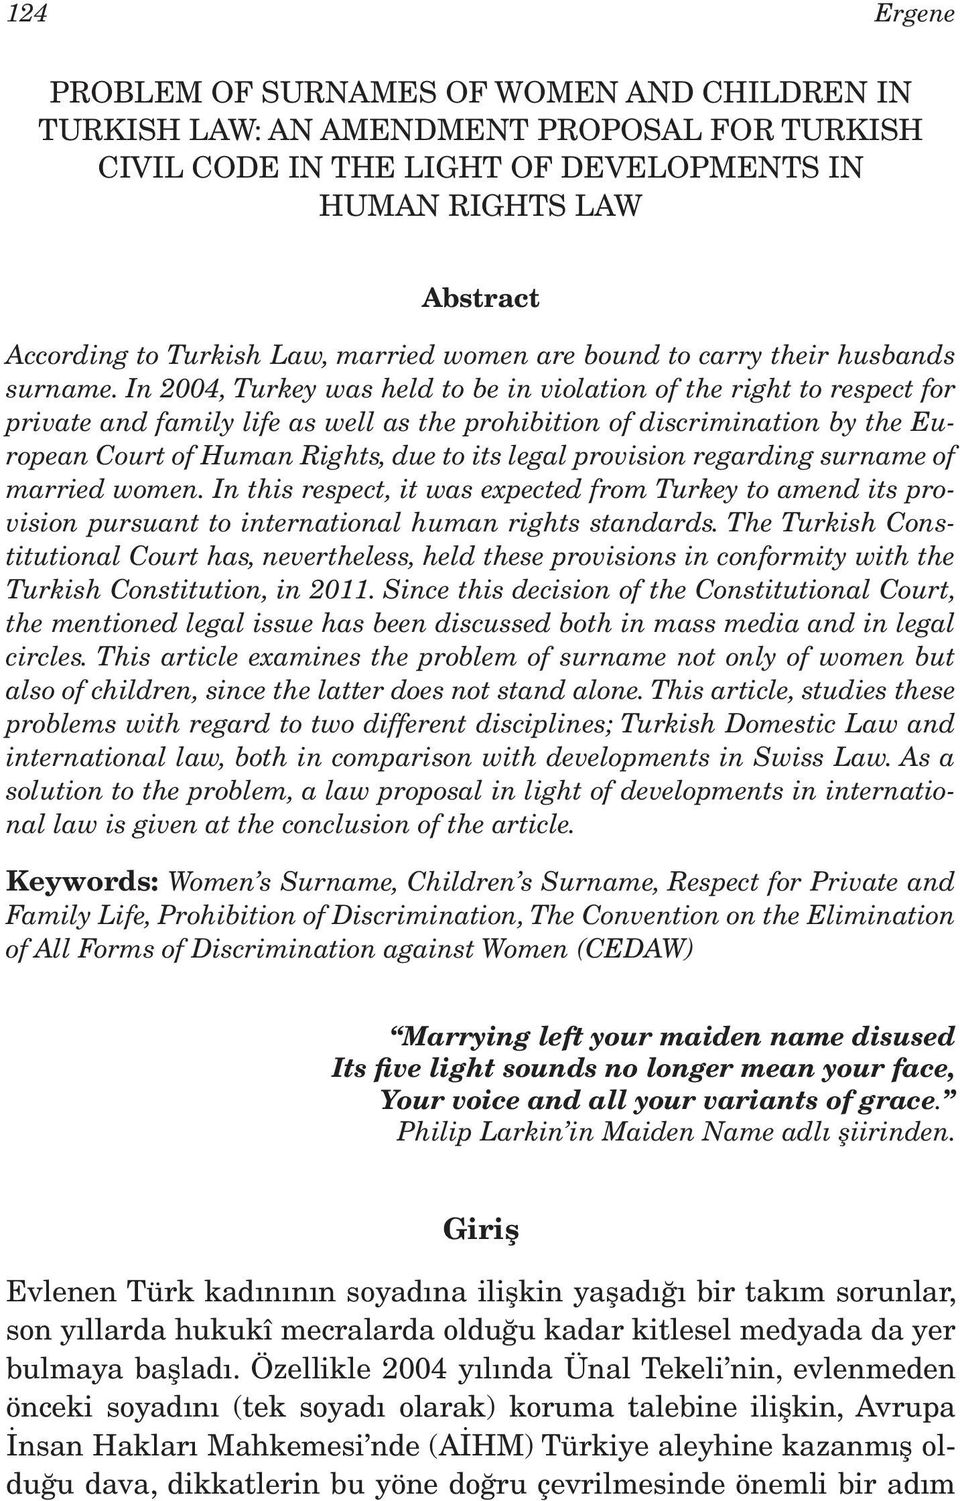 In 2004, Turkey was held to be in violation of the right to respect for private and family life as well as the prohibition of discrimination by the European Court of Human Rights, due to its legal